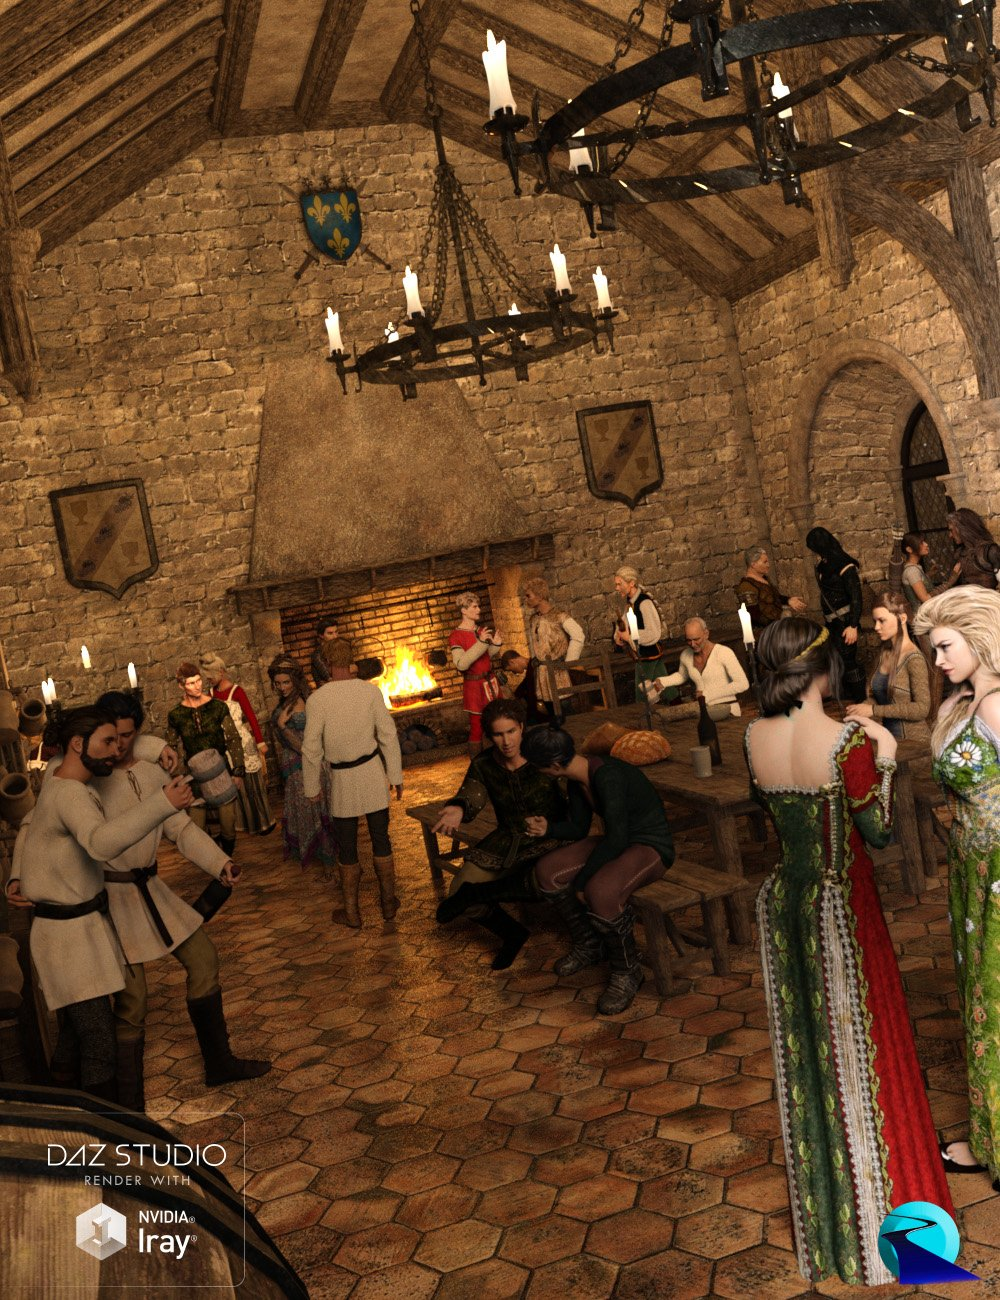 Now-Crowd Billboards - Medieval City Life by: RiverSoft Art, 3D Models by Daz 3D